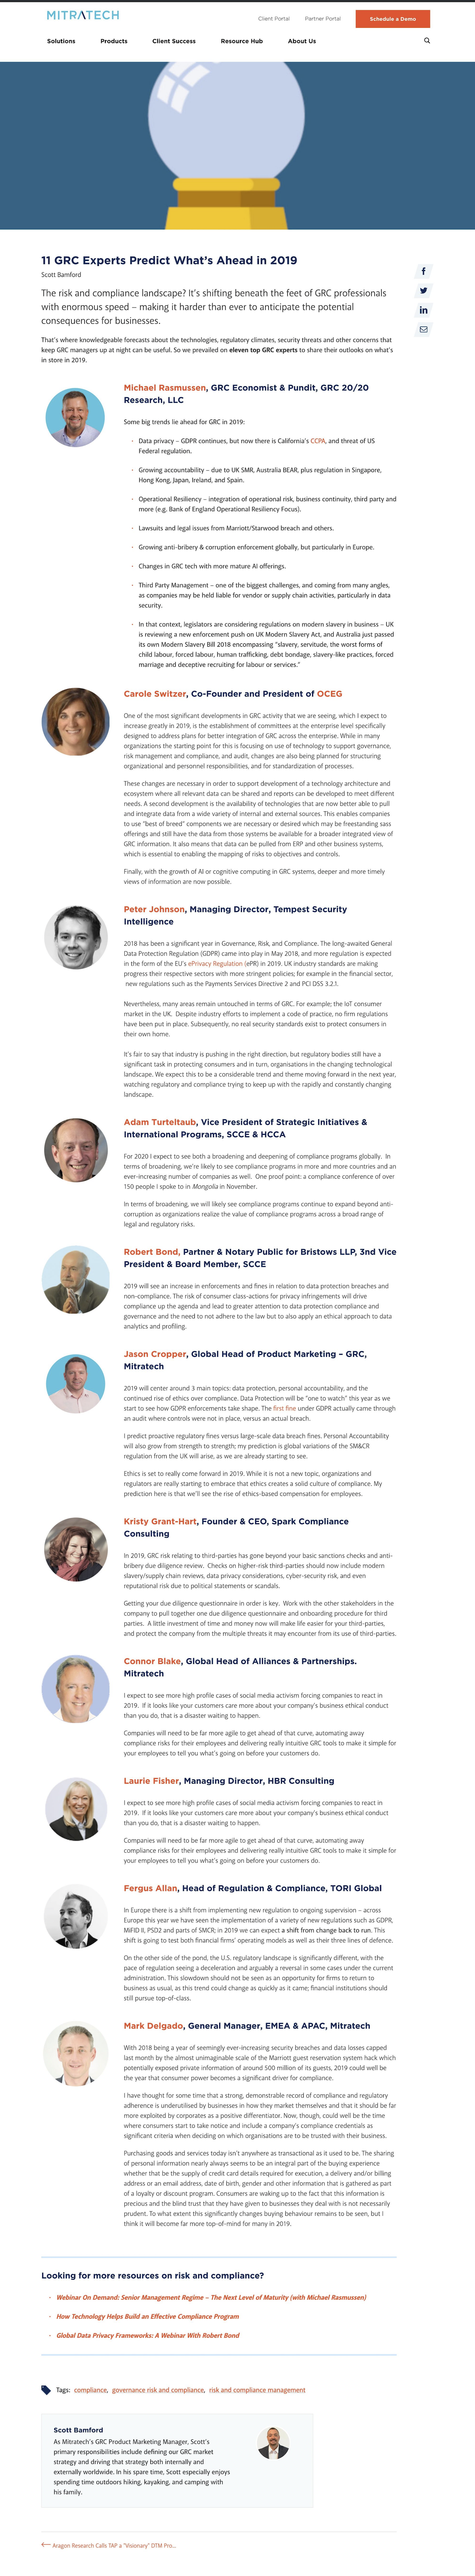 11 GRC Experts Predict What's Ahead in 2019 Blog Post